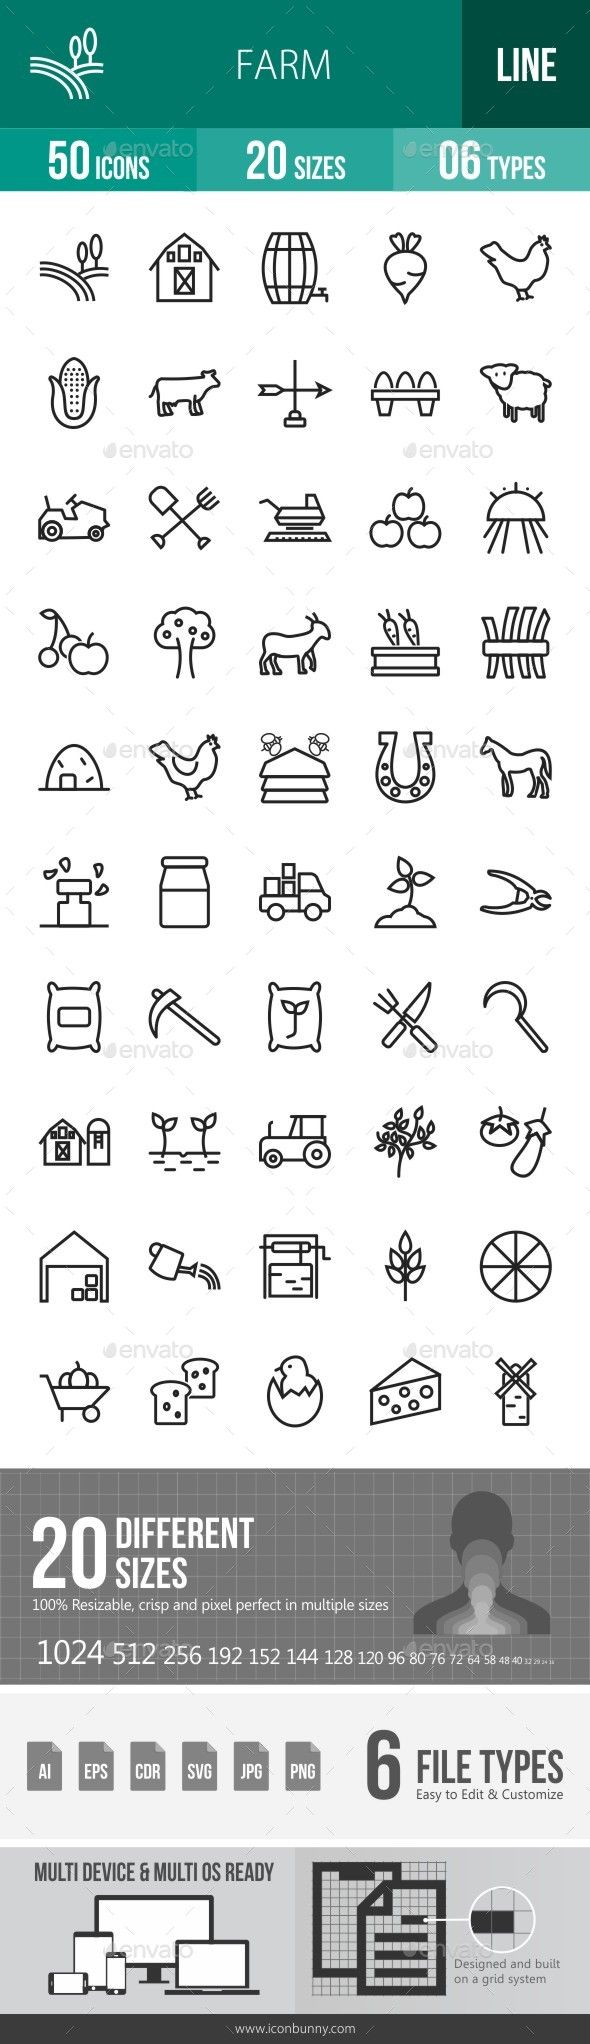 Farm Line Icons. Download here: http://graphicriver.net/item/farm-line-icons/16791510?ref=ksioks